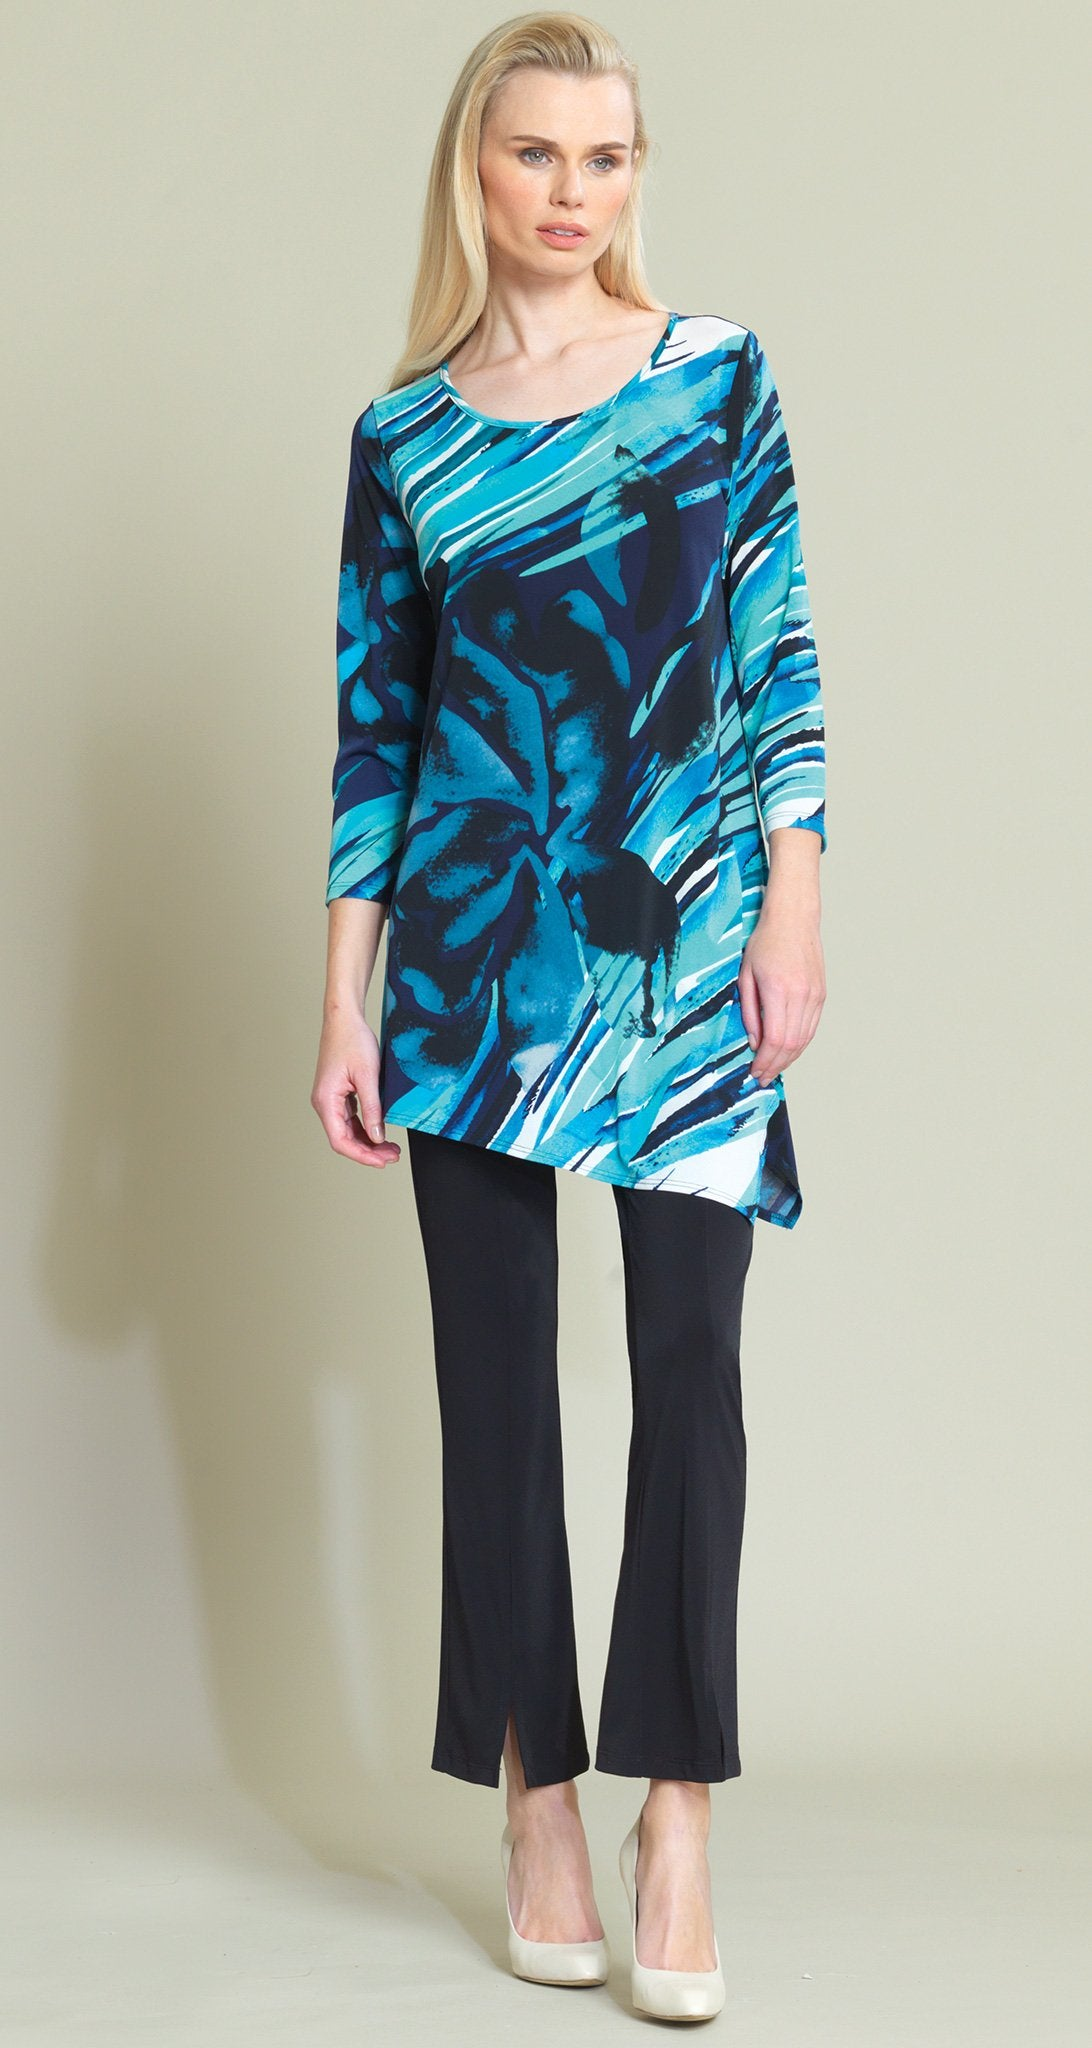 Floral Abstract Print Angle Hem Tunic - Navy/Turquoise - Clara Sunwoo